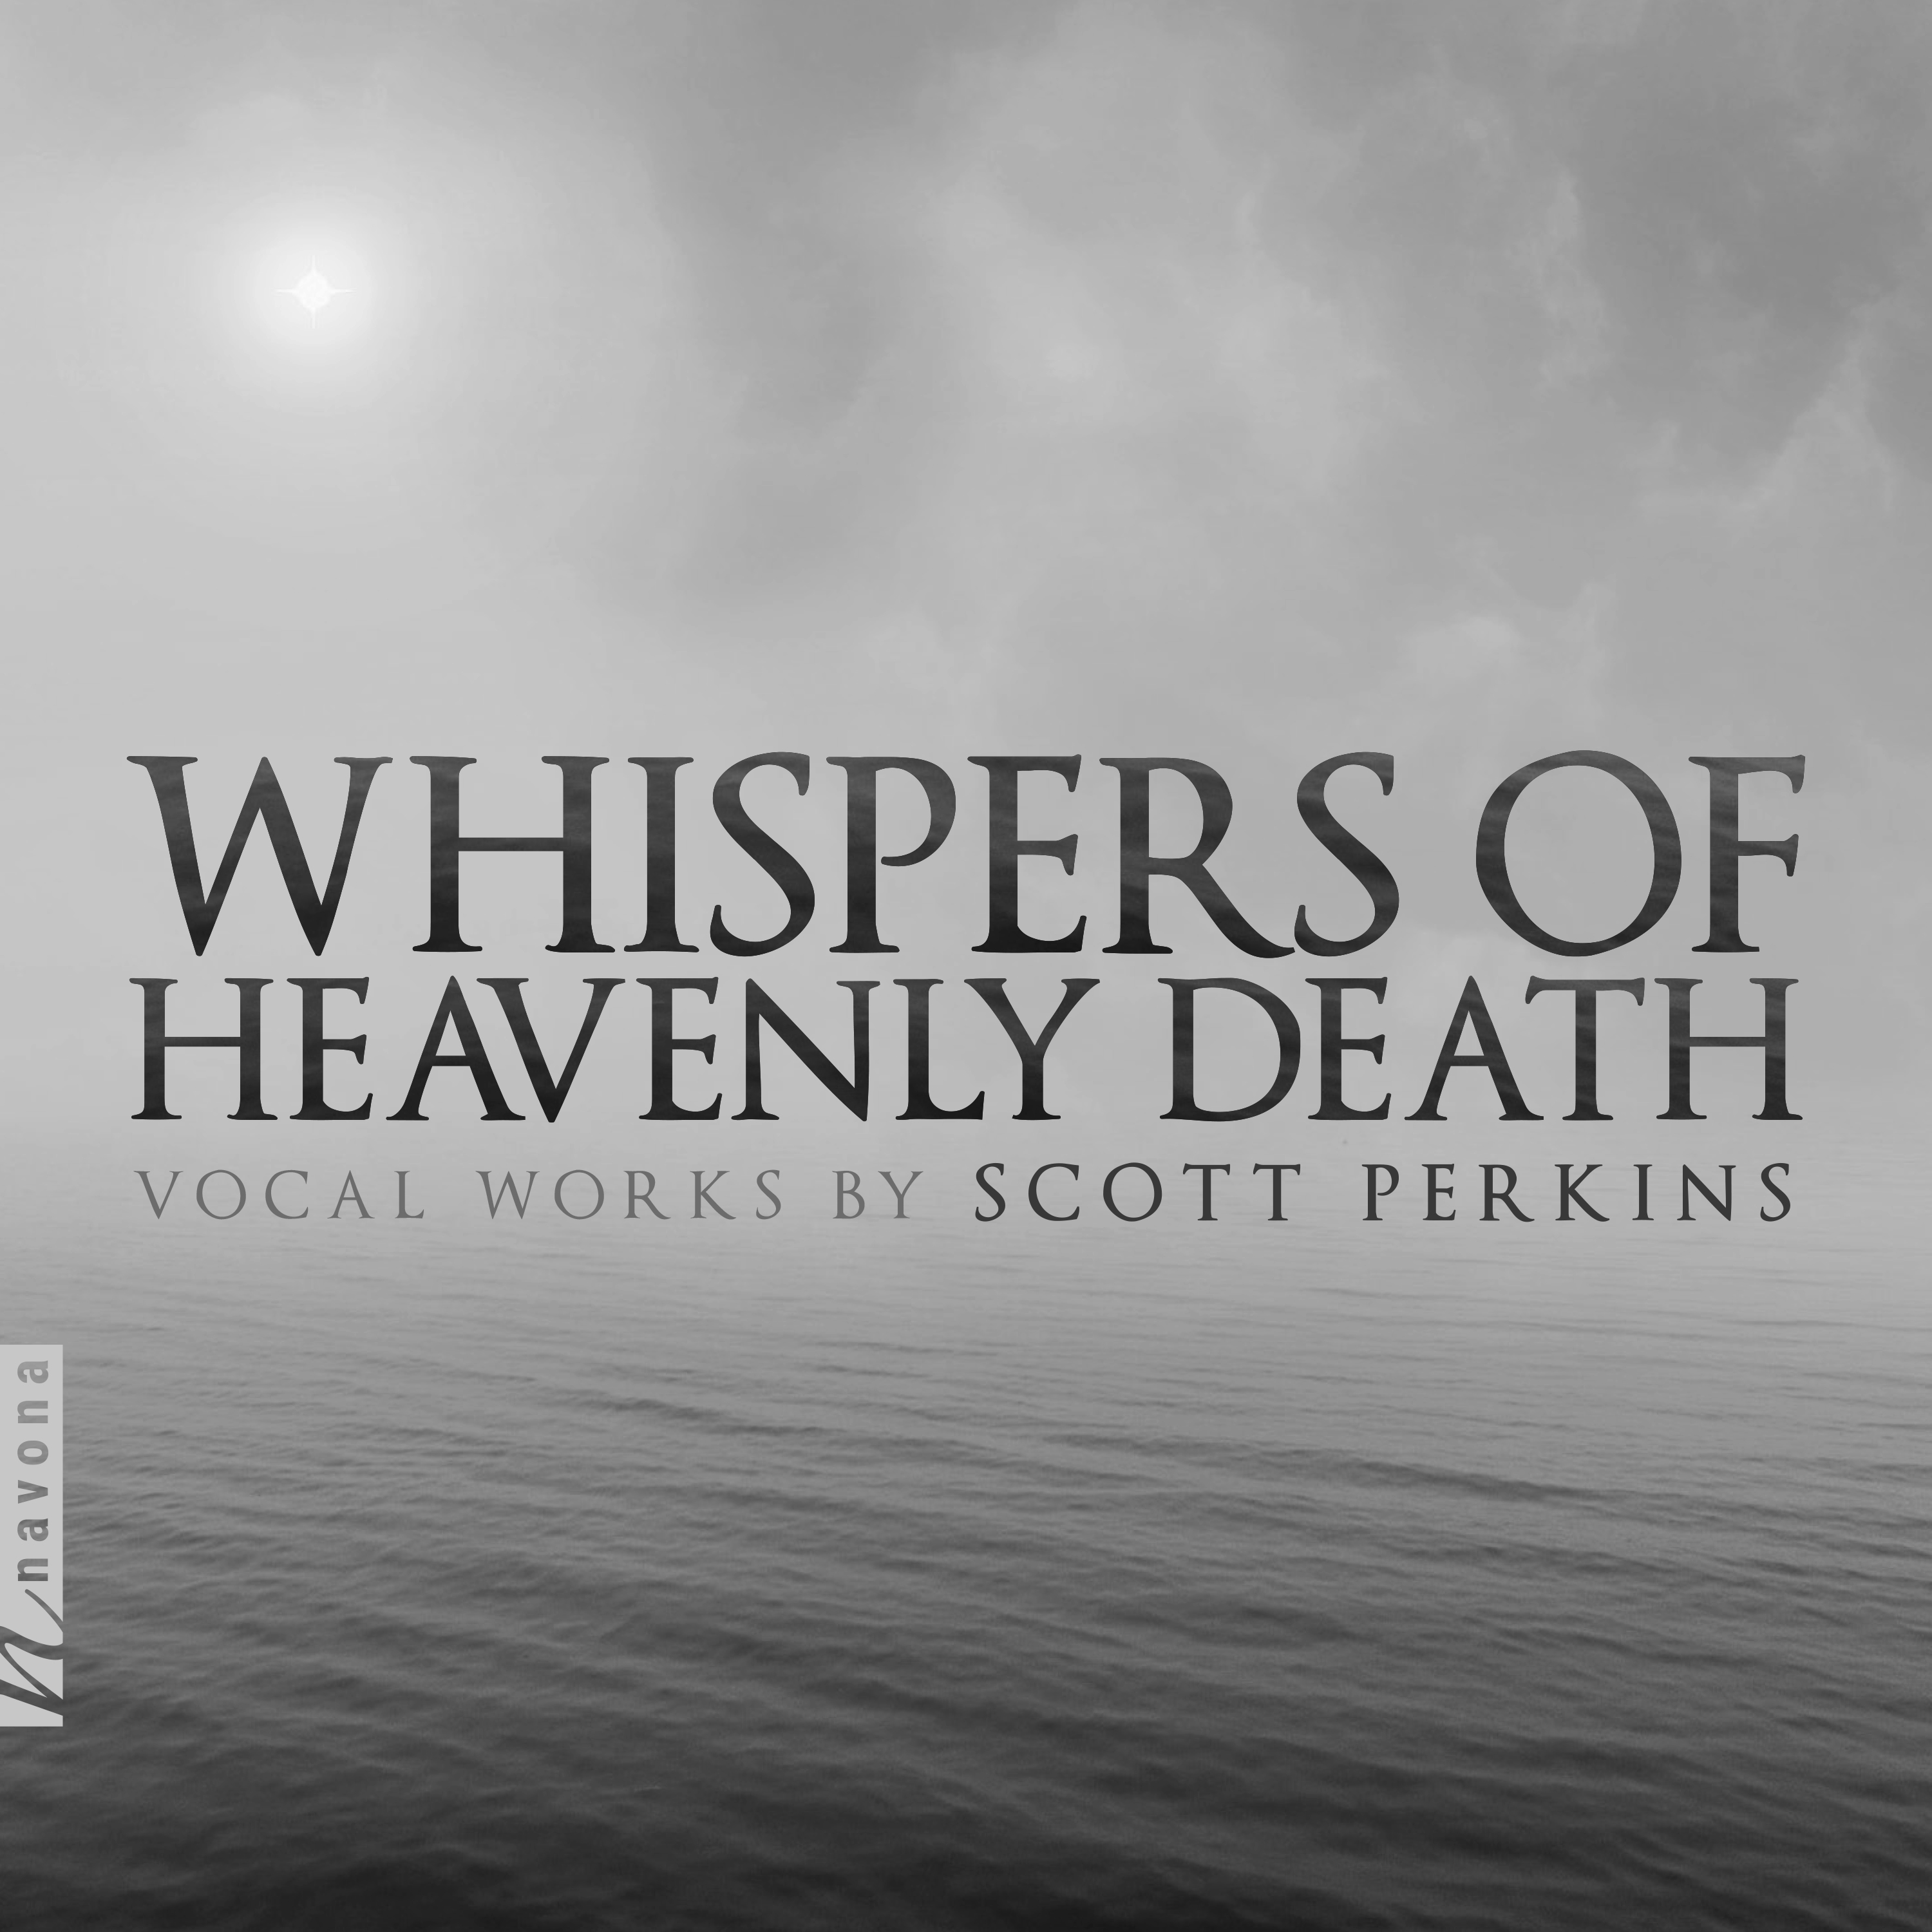 nv6198---whispers-of-heavenly-death---front-cover